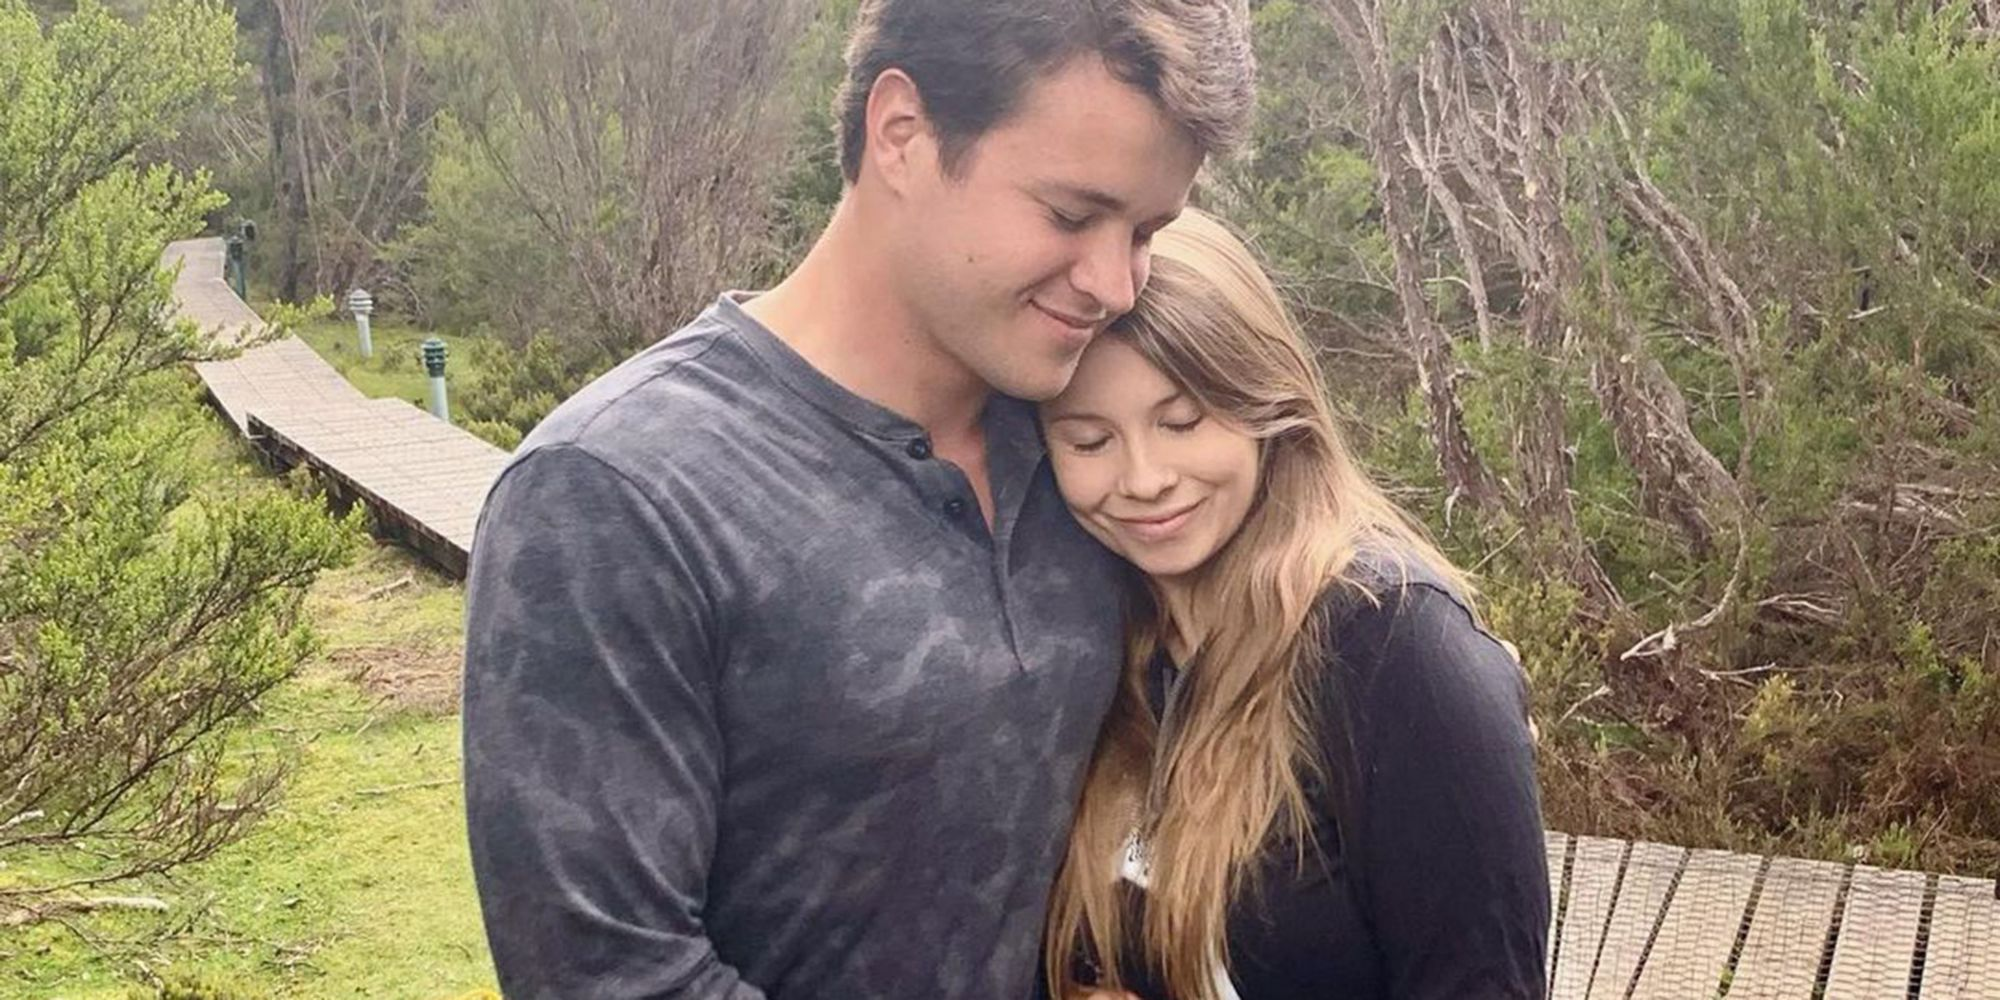 Bindi Irwin shares the precious pic with her husband as she nears her due date